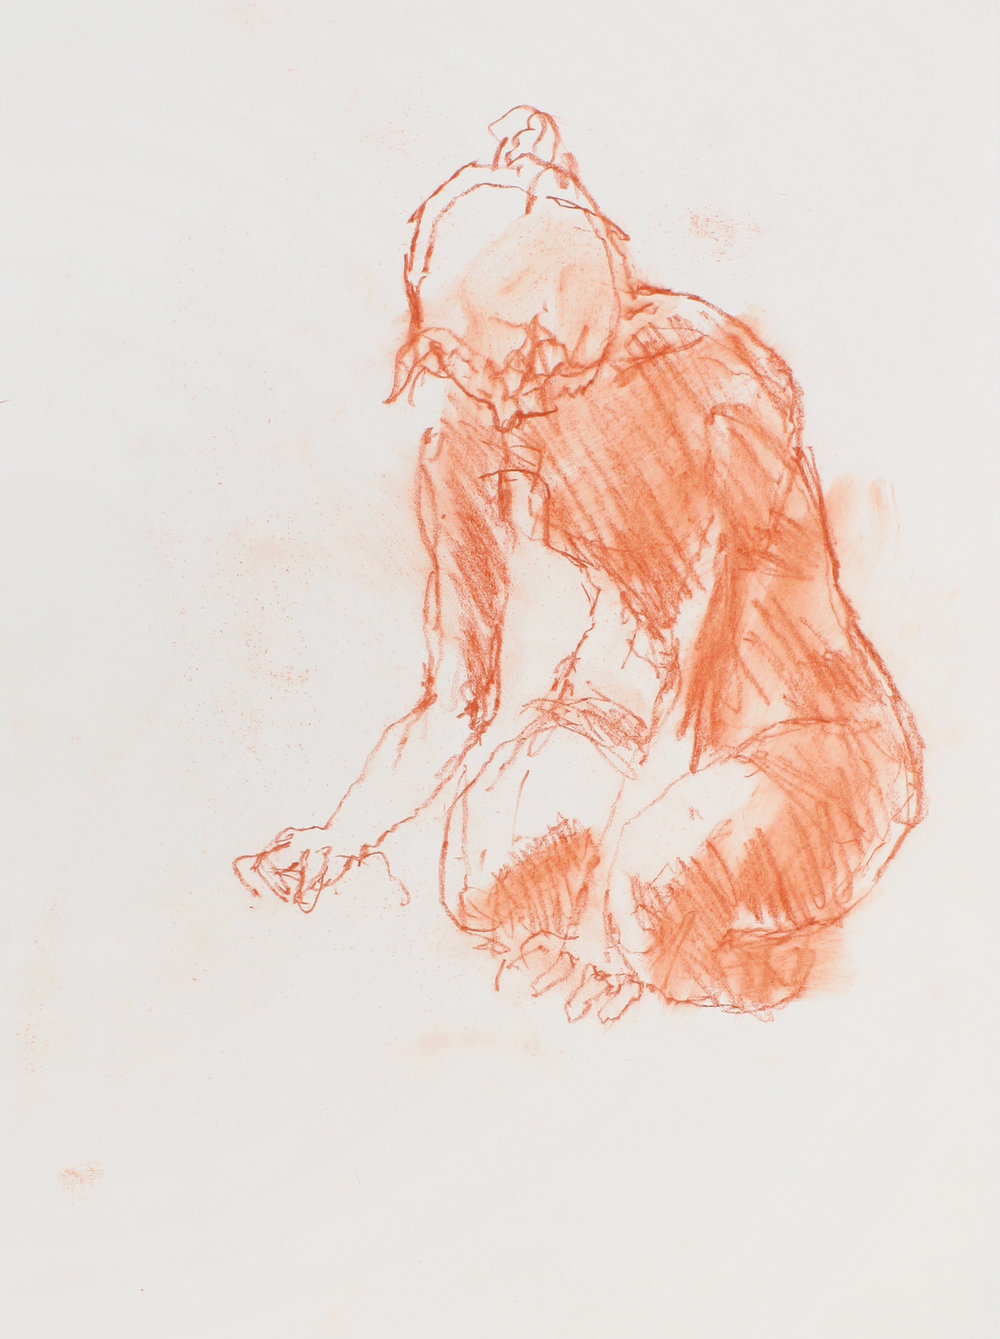 1999_Nude_Sitting_with_Bent_Legs_red_conte_on_paper_15x11in_WPF556.jpg